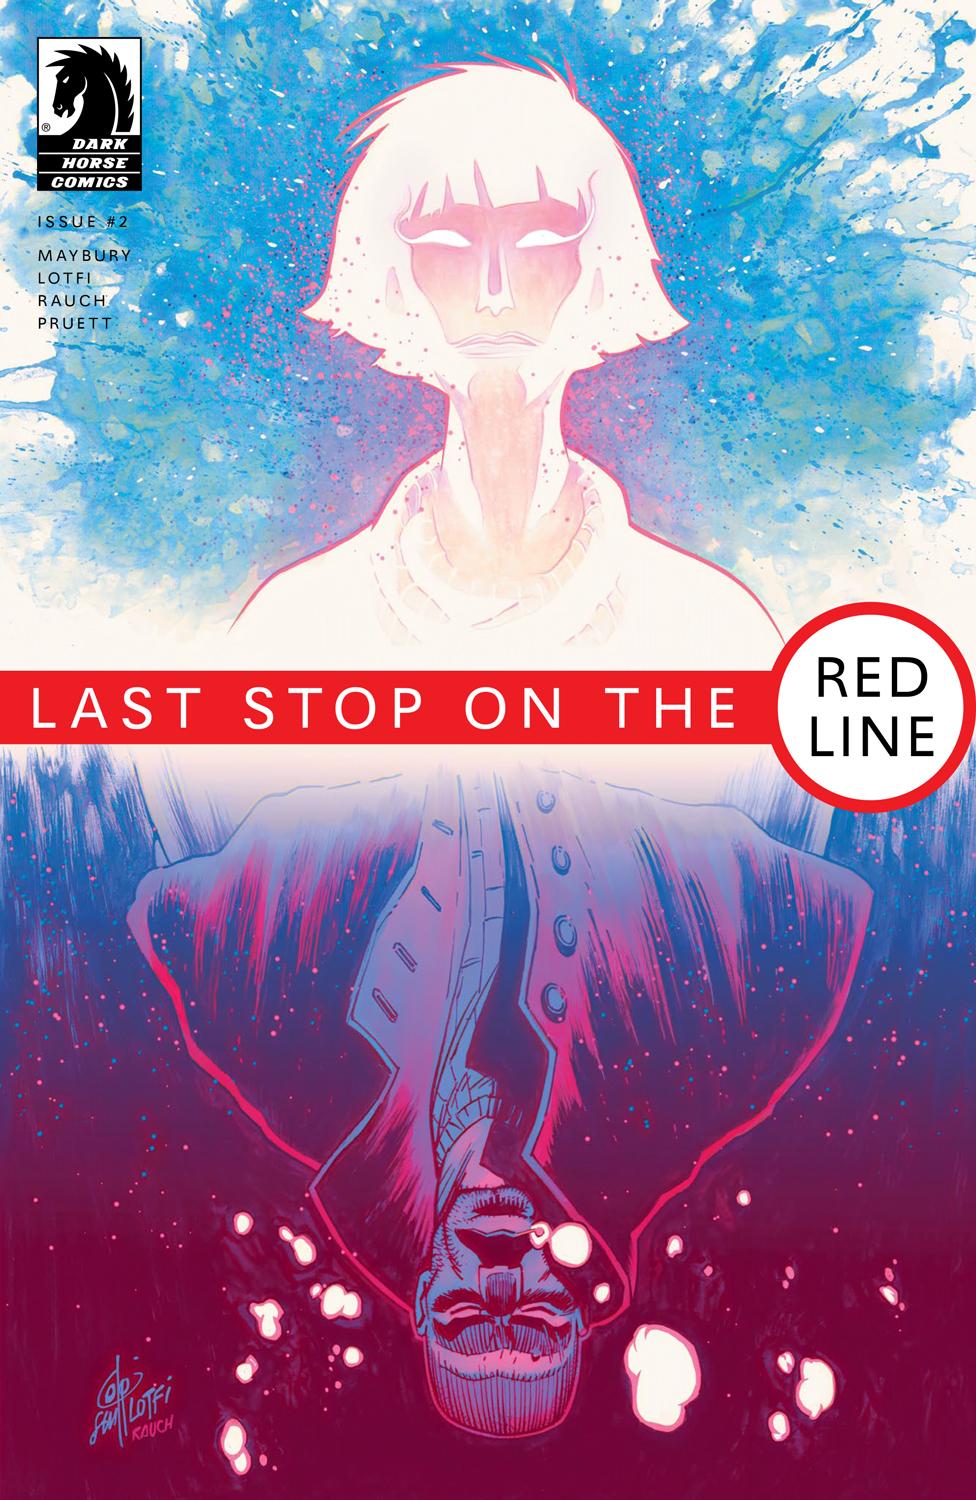 LAST STOP on the RED LINE Cover #2 - Dark Horse Comics